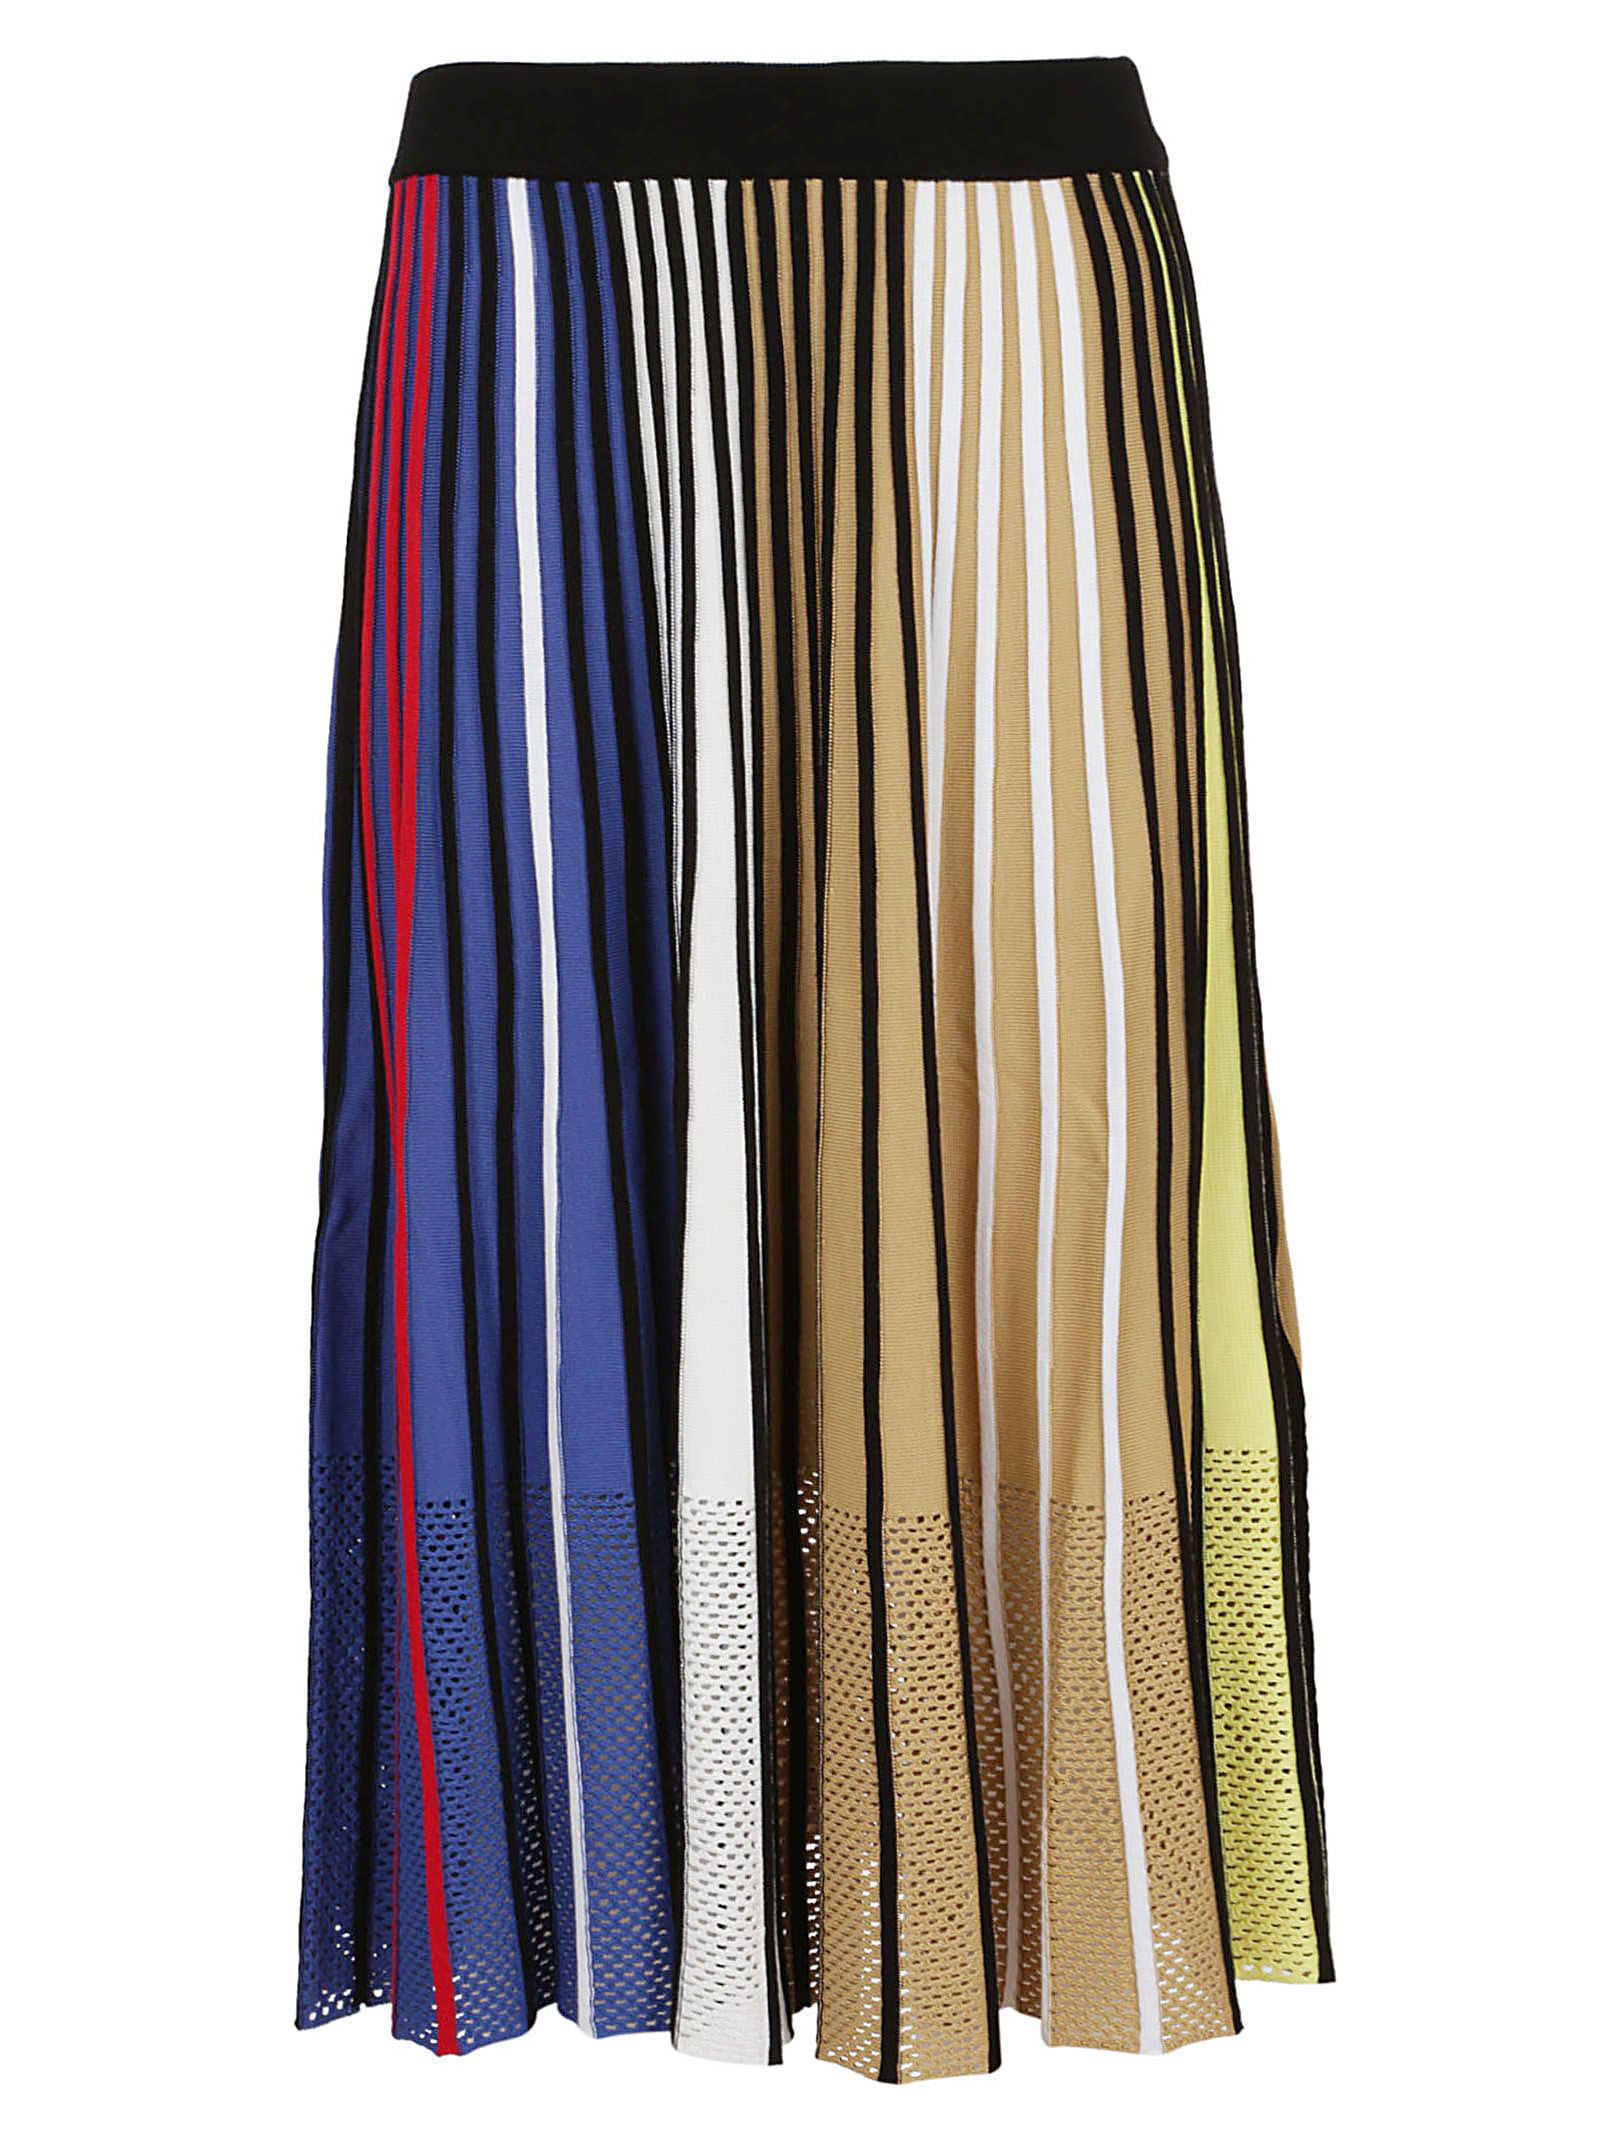 bfb122e363c0 Kenzo Vertical-Stripe Pleated Mesh Midi Skirt In Mu -Multico